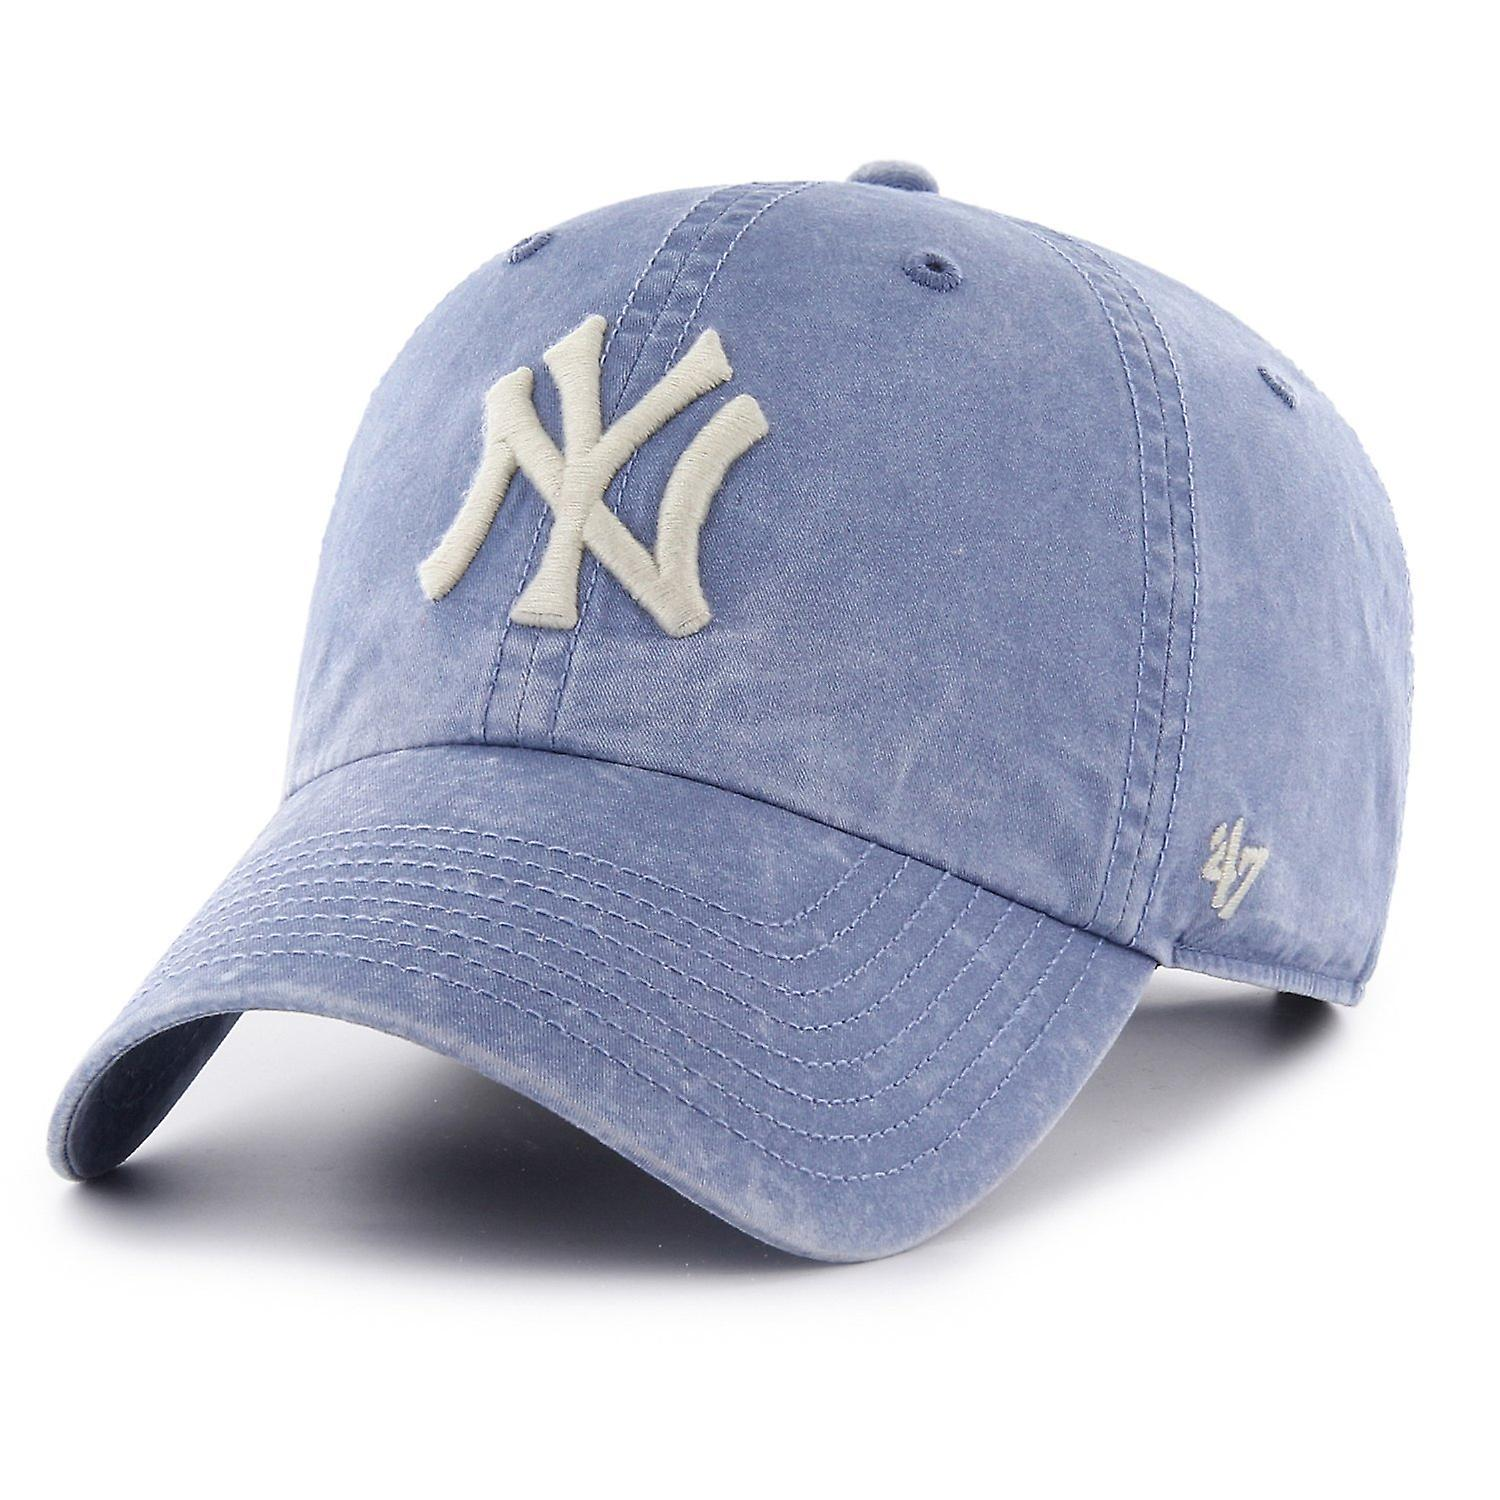 55b48cc1 47 fire relaxed fit Cap - HUDSON New York Yankees sky blue